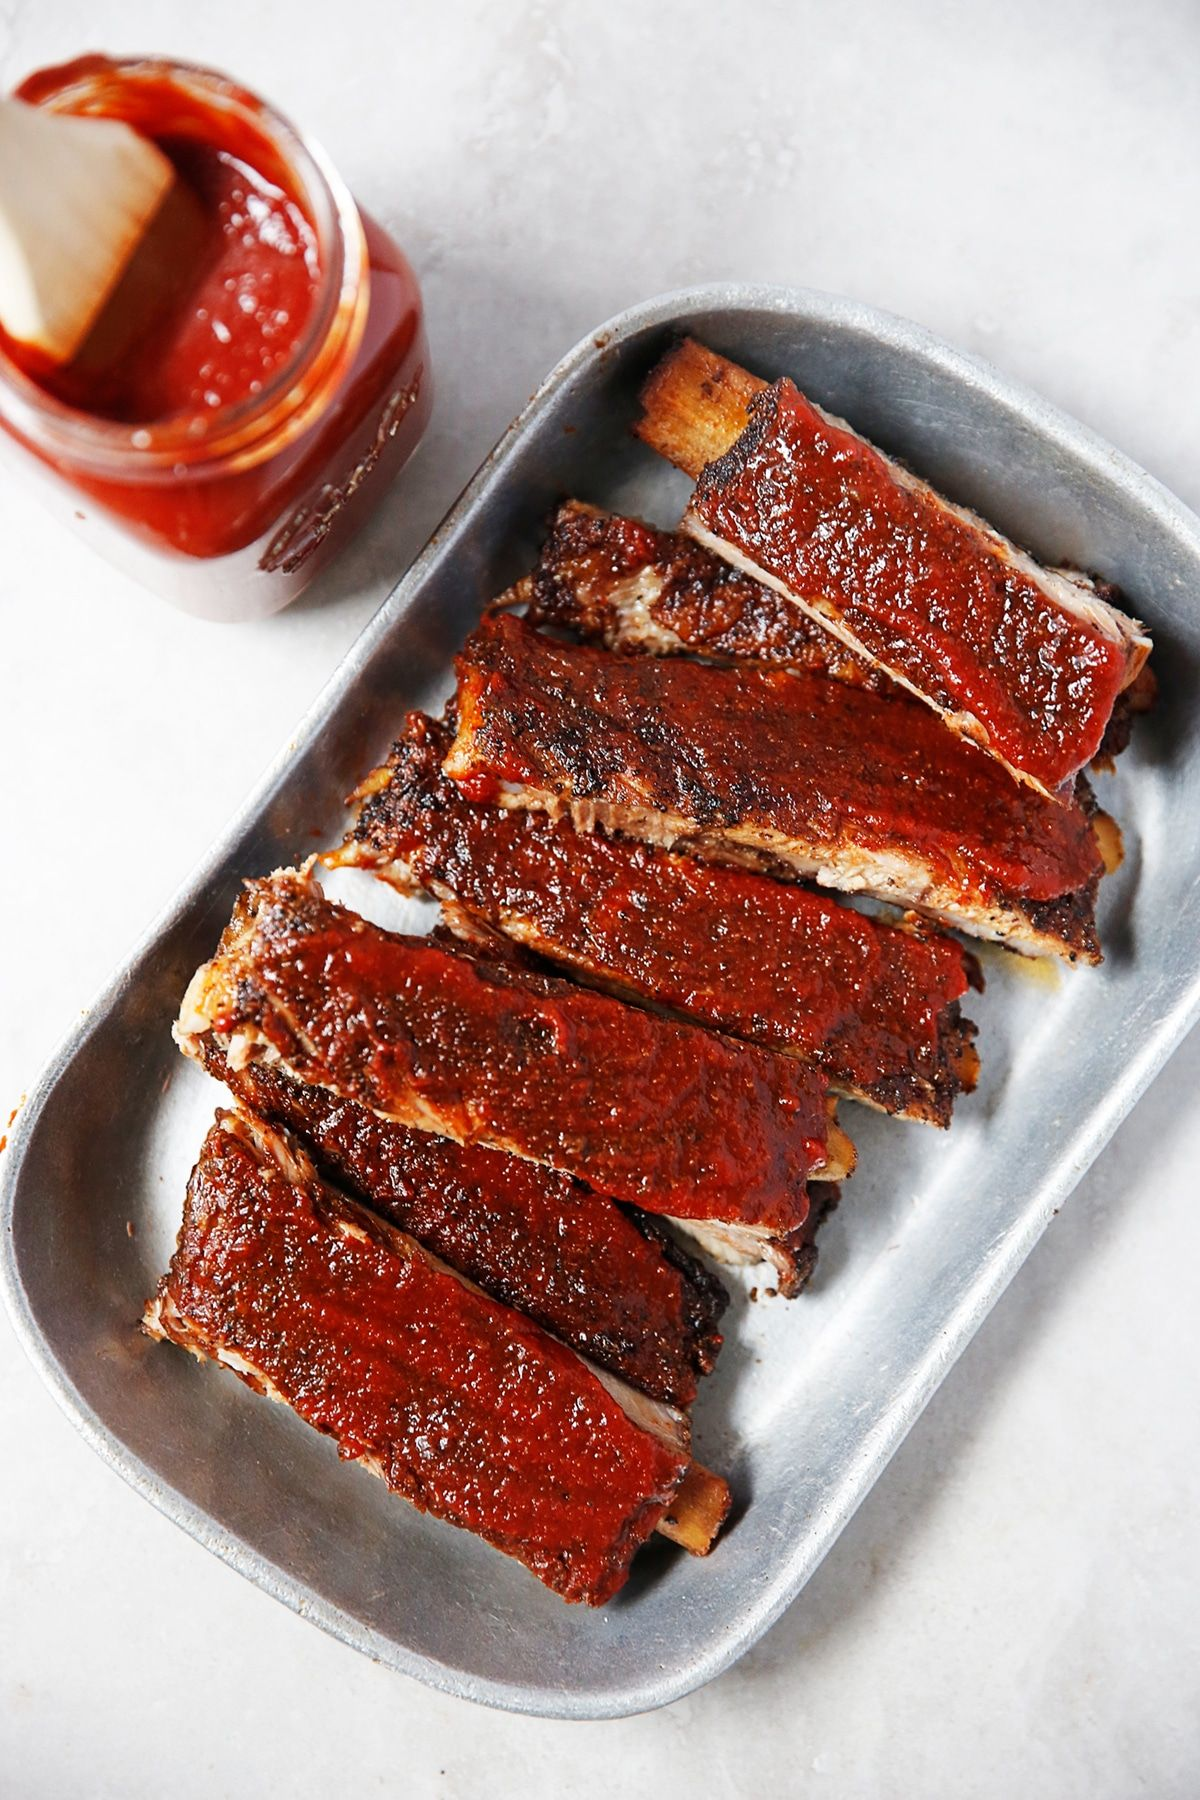 These Oven Baked Coffee Barbecue Pork Ribs Are The Perfect Main Dish To Cook Up On A Lazy Sunday